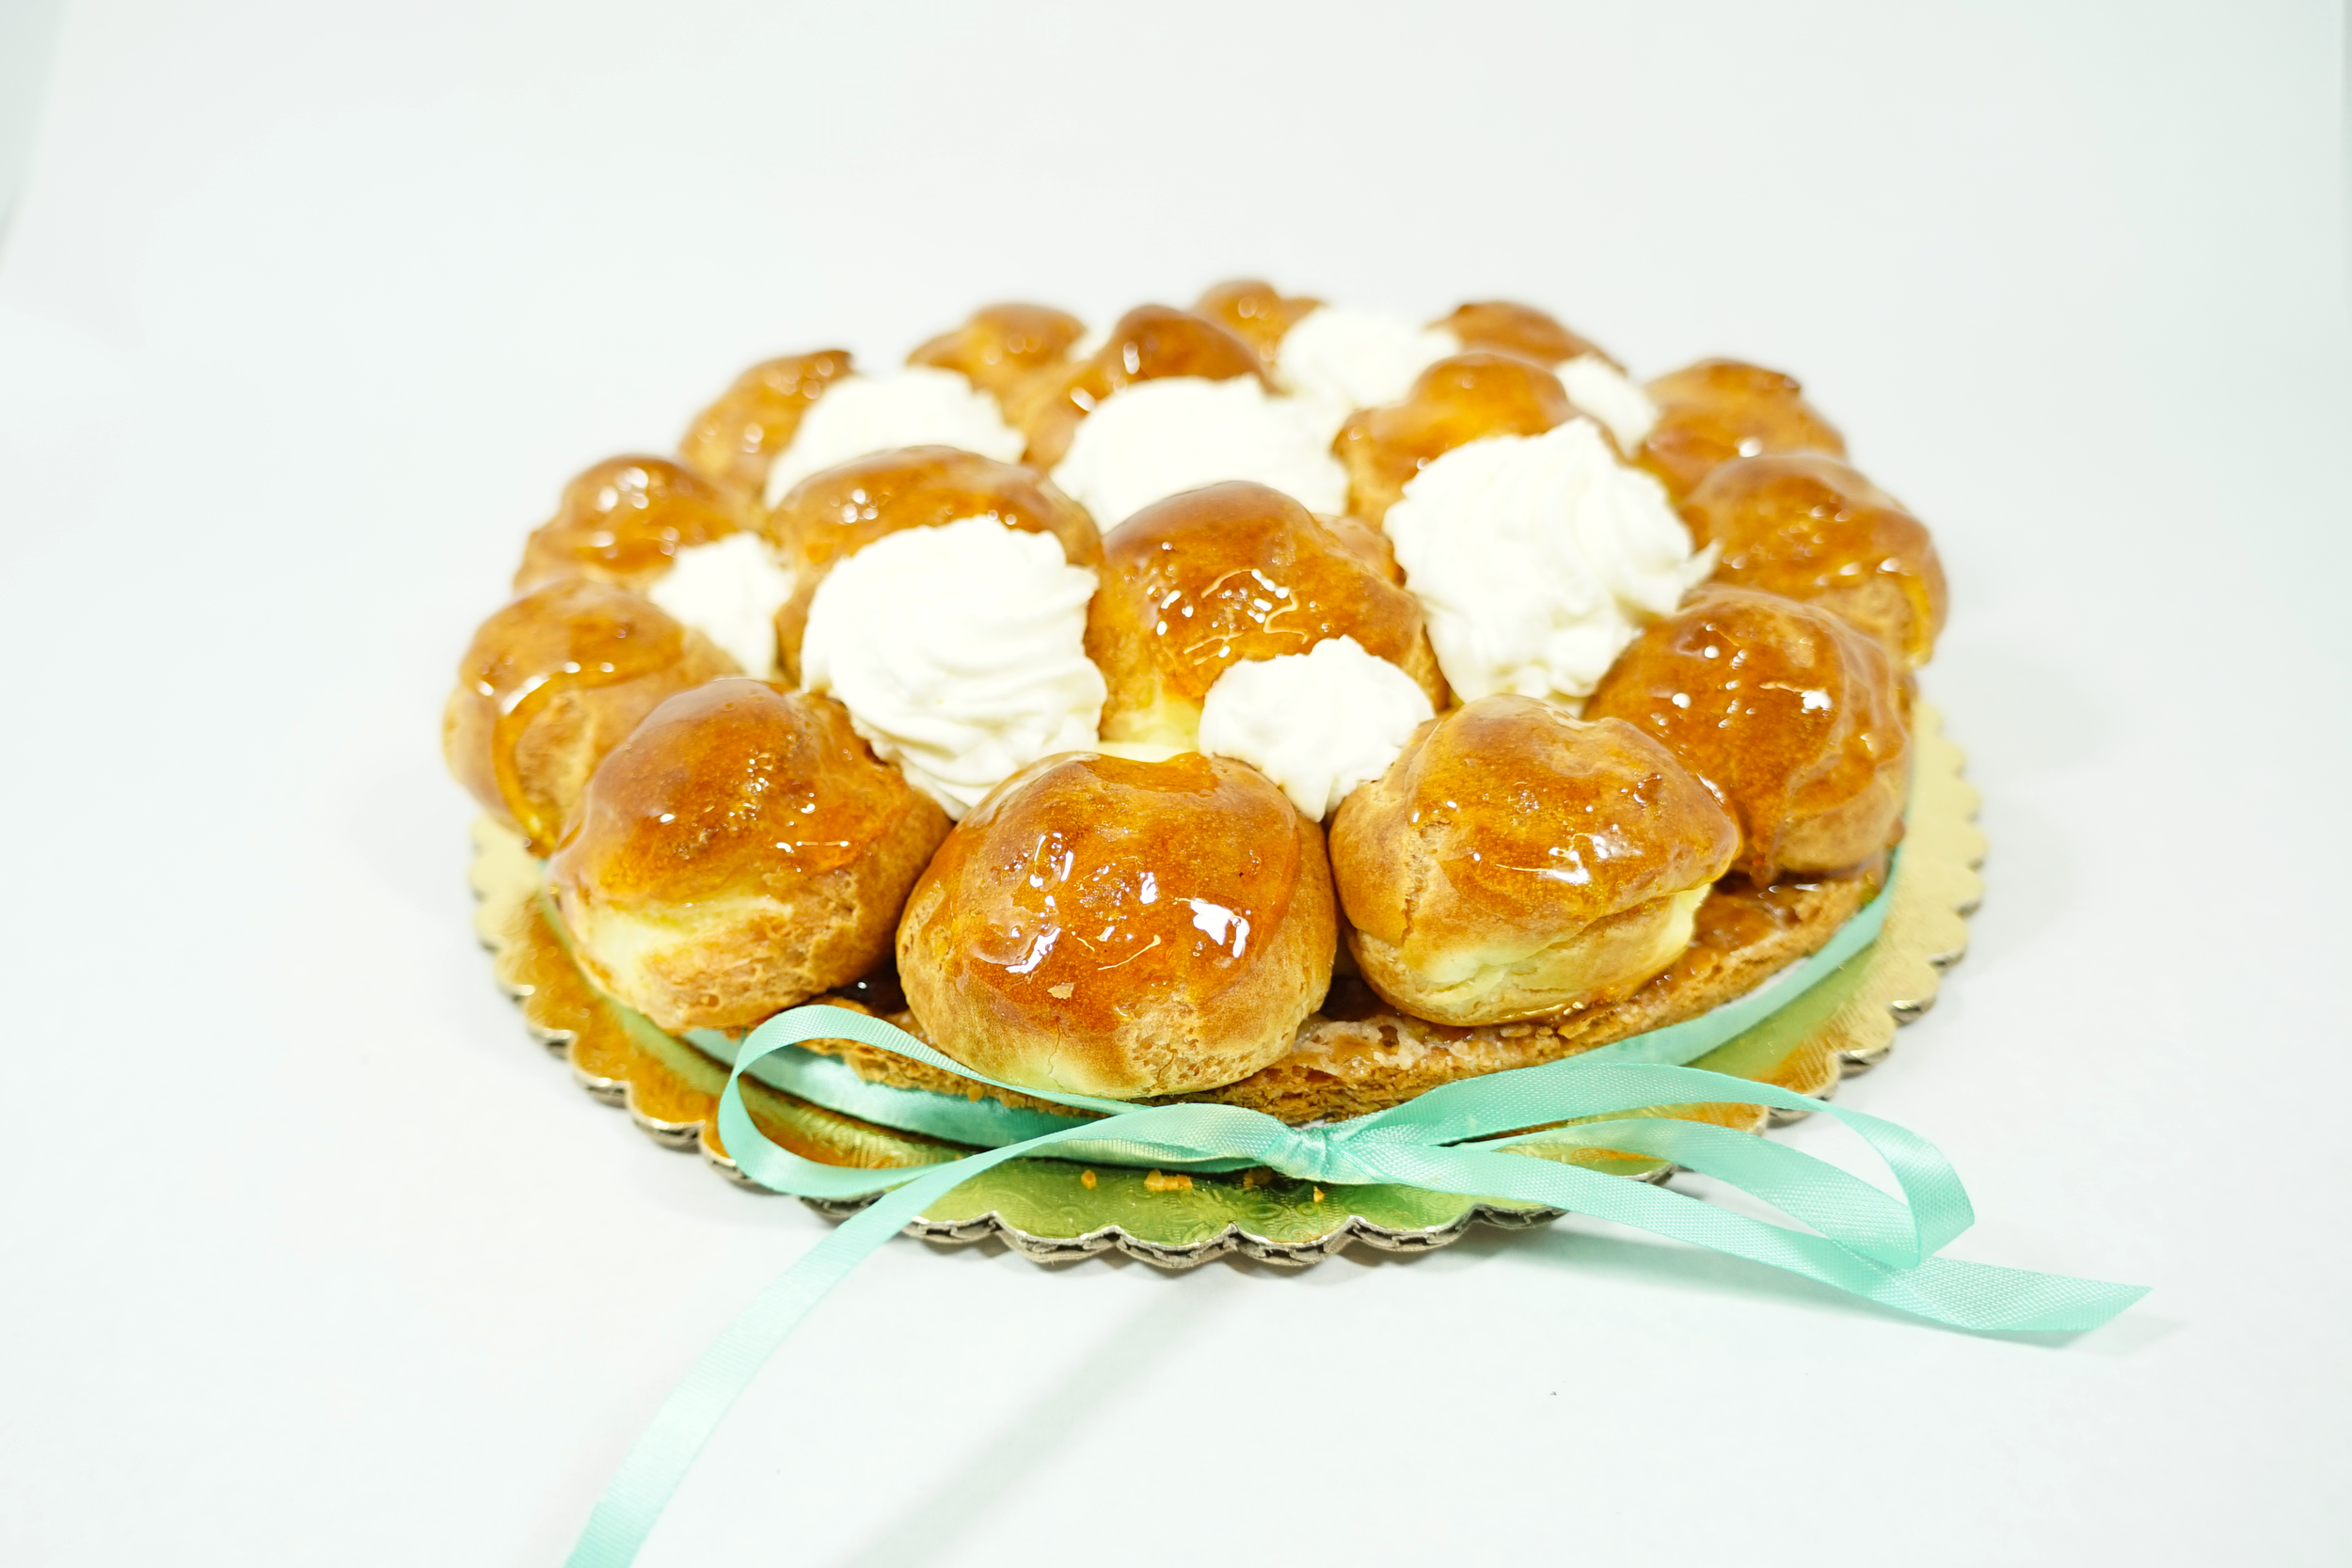 St. Honorae - A unique, traditional french cake made with cream filled puff pastry ball laid in a circle form. Topped with Bavarian cream decorated with caramel choux.